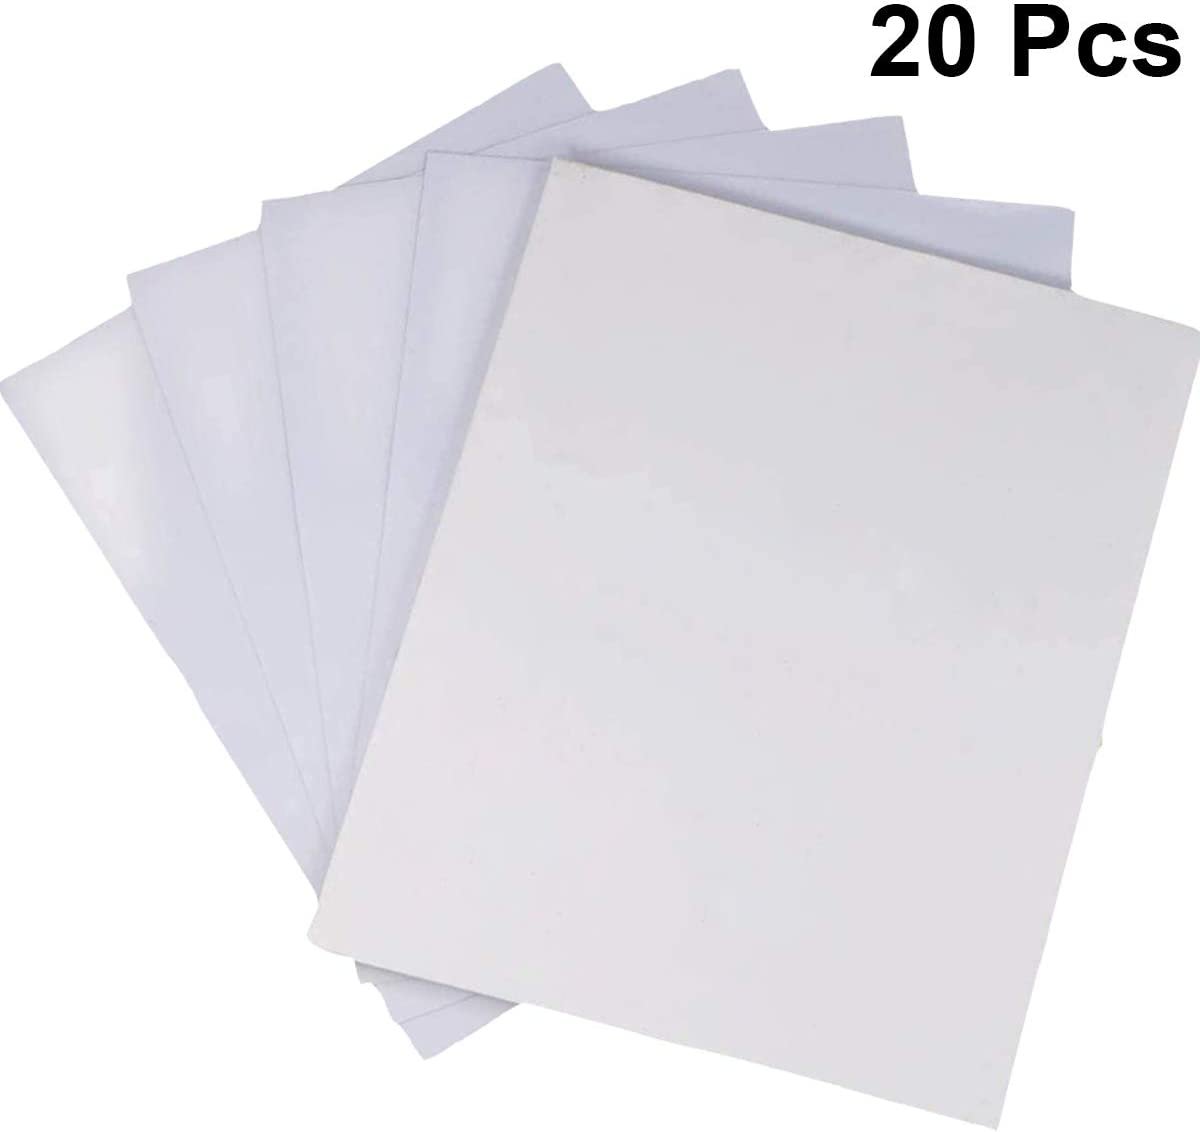 Puzzle Saver Peel Large Clear Puzzle Glue Sheets Transparent Adhesive Backing Sheets Puzzle Preserver for Framing 5 Puzzles 20 Sheets